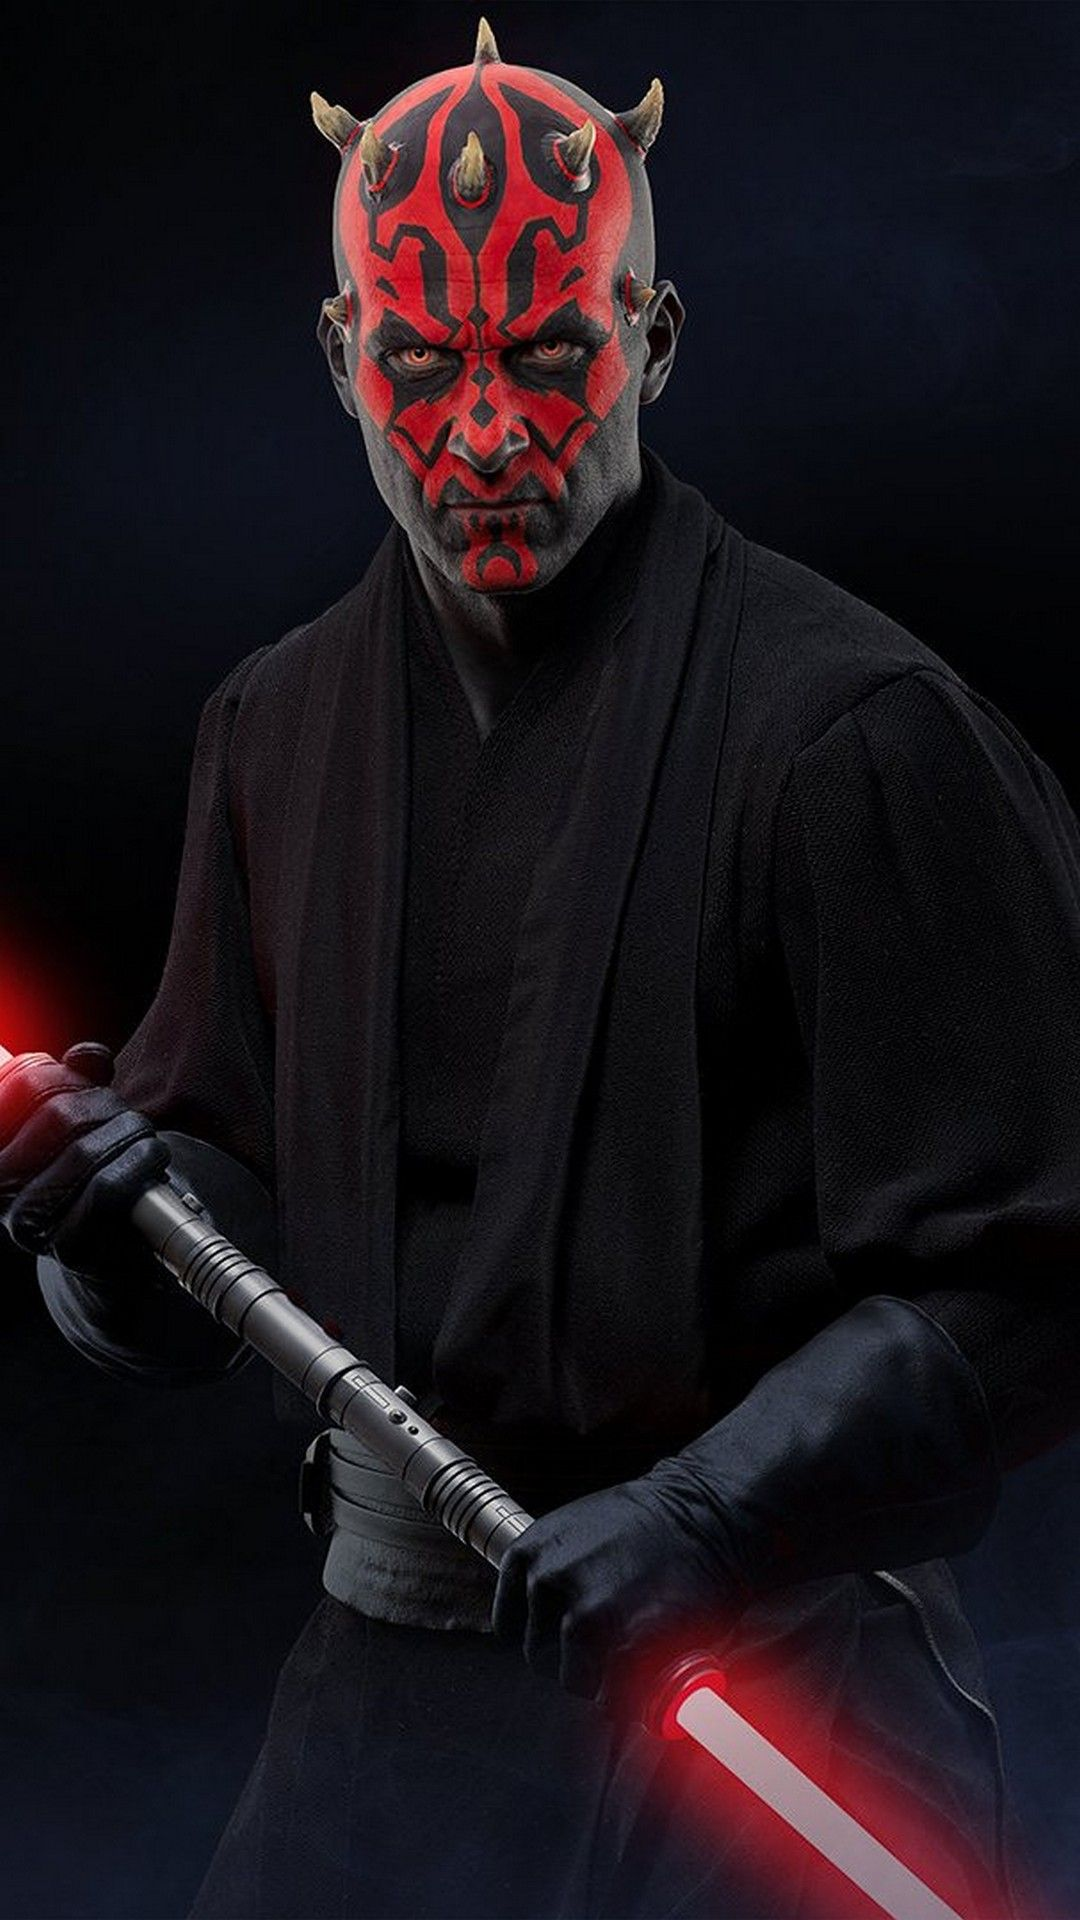 Darth Maul Star Wars Battlefront 2 Iphone Wallpaper Best Iphone Wallpaper Star Wars Movies Posters Star Wars Pictures Star Wars Images